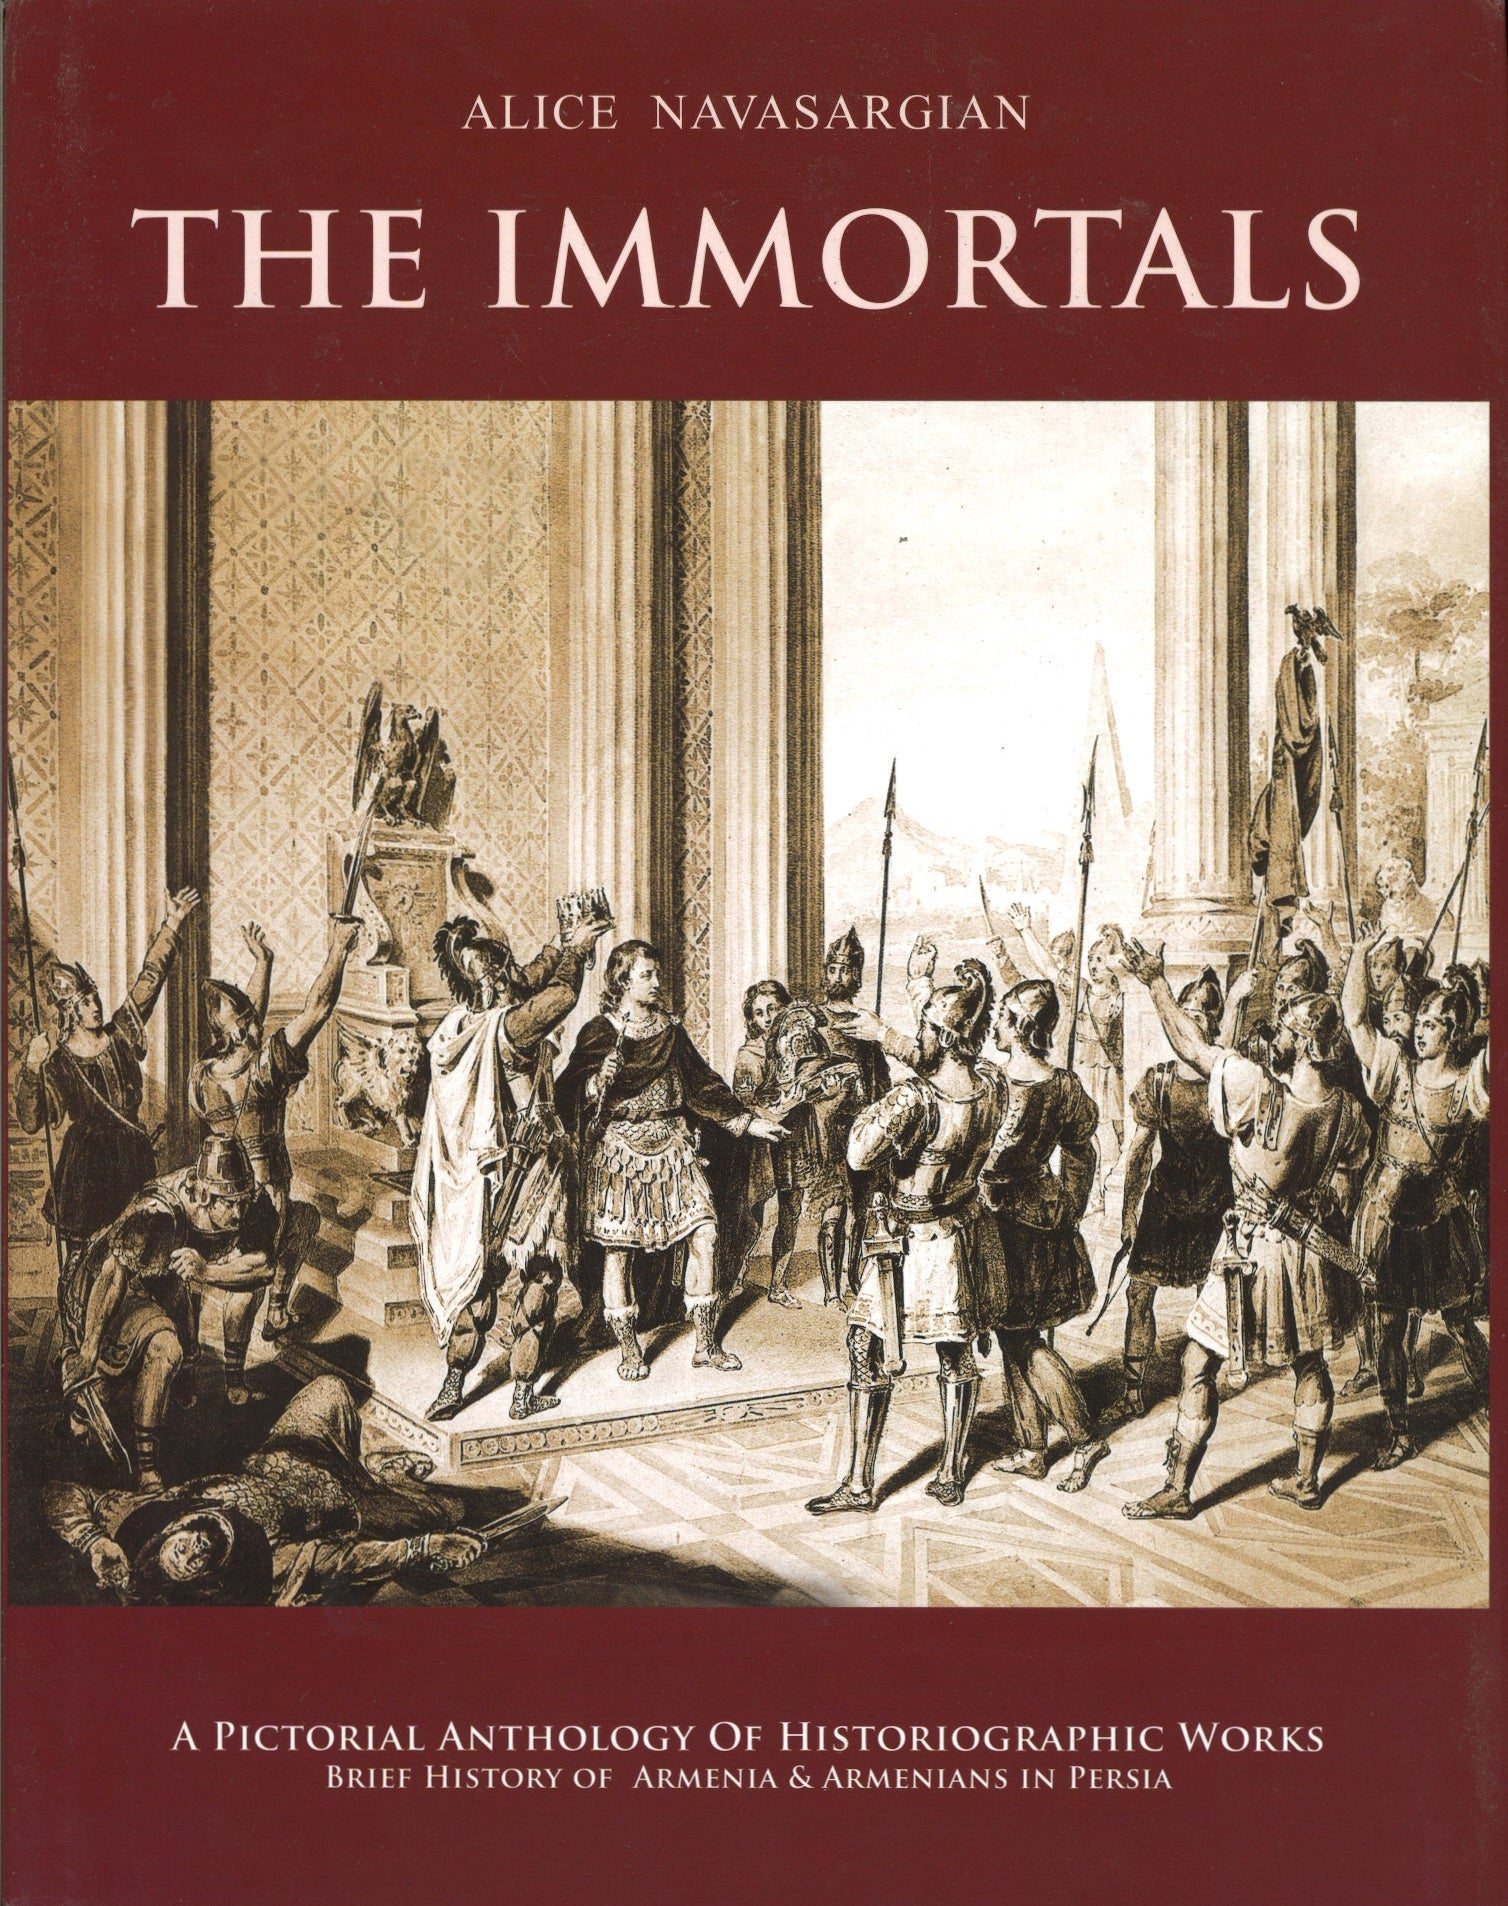 IMMORTALS: A PICTORIAL ANTHOLOGY OF HISTORIOGRAPHIC WORKS